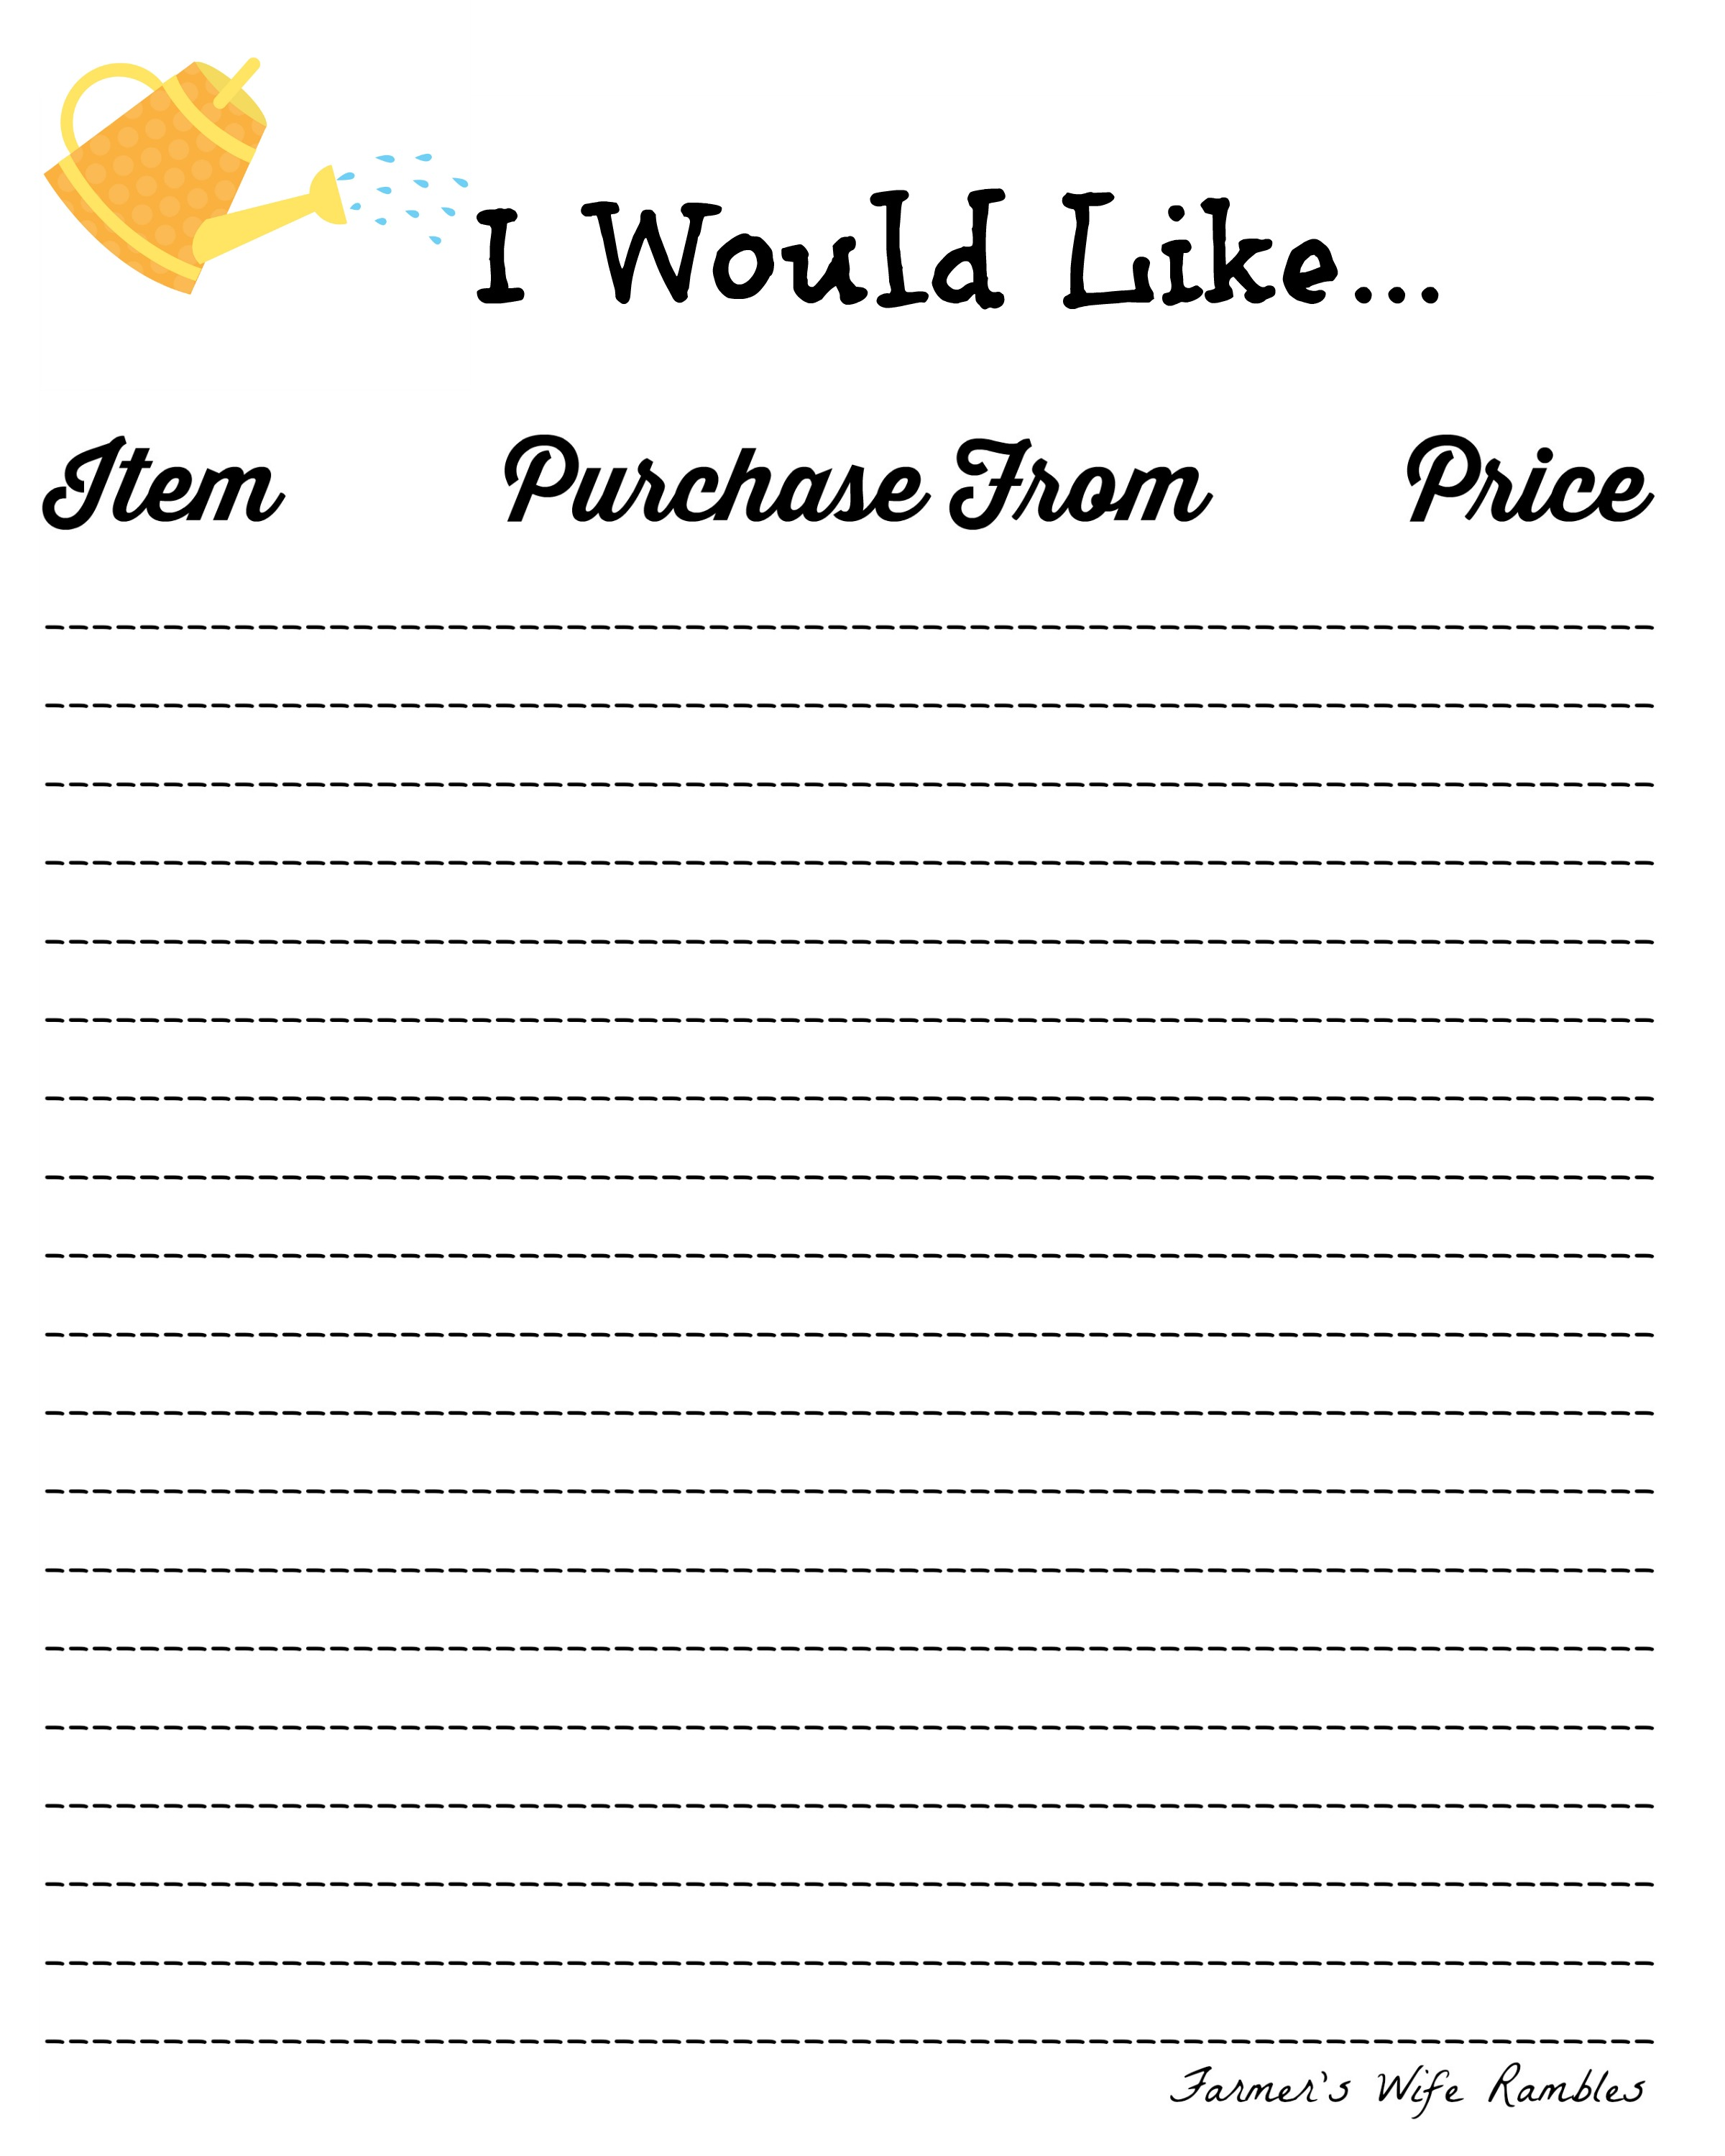 printable birthday wish list template ; I-Would-Like-Yellow-Watering-Can